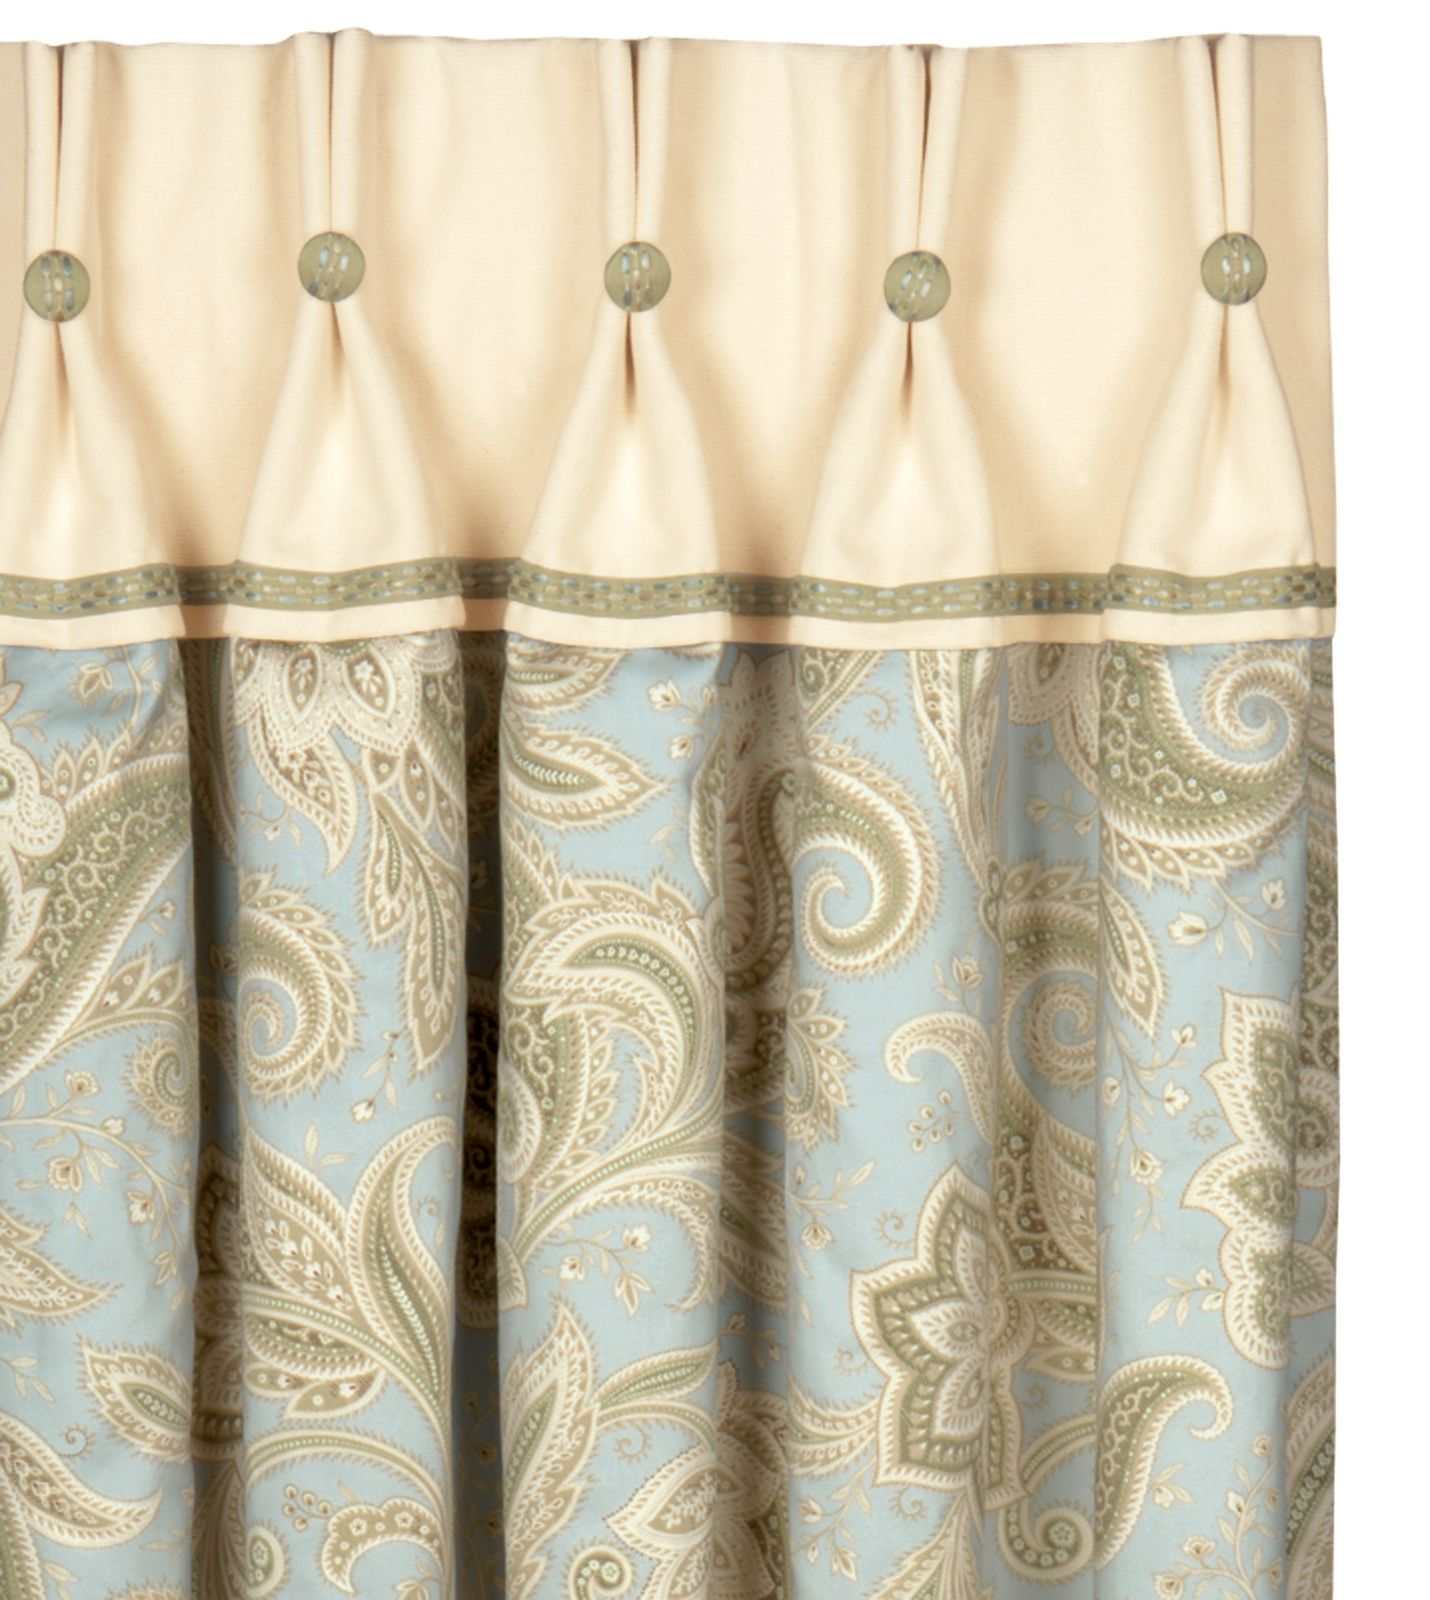 Designer curtain panels - 17 Best Images About Pleated Draperies On Pinterest Window Panels Roman Shades And White Curtains